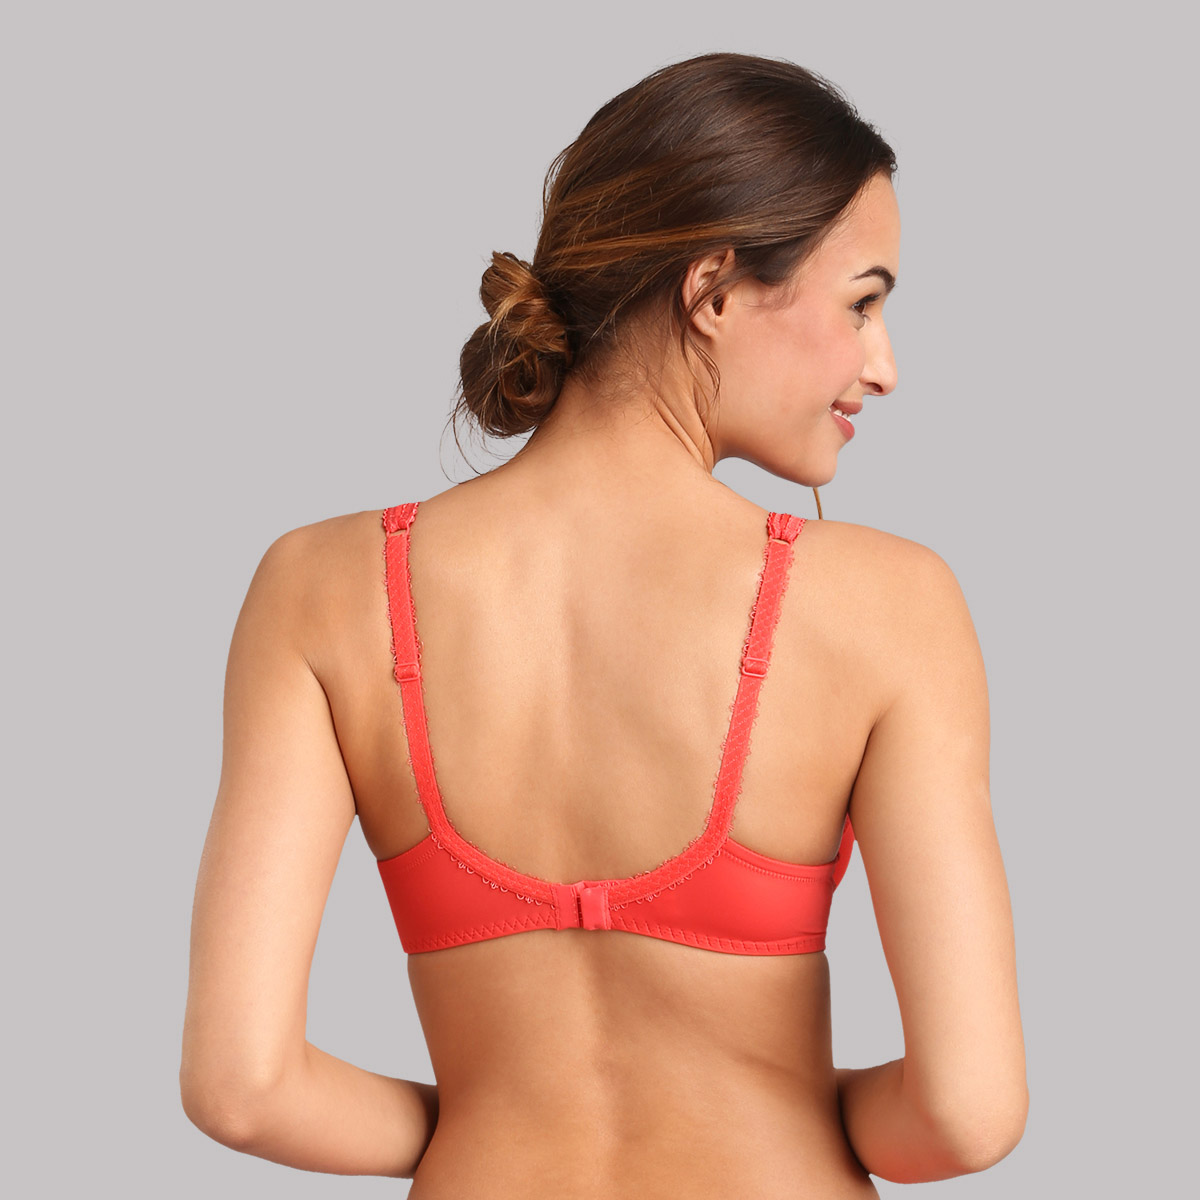 Underwired spacer bra in coral - Flower Elegance, , PLAYTEX